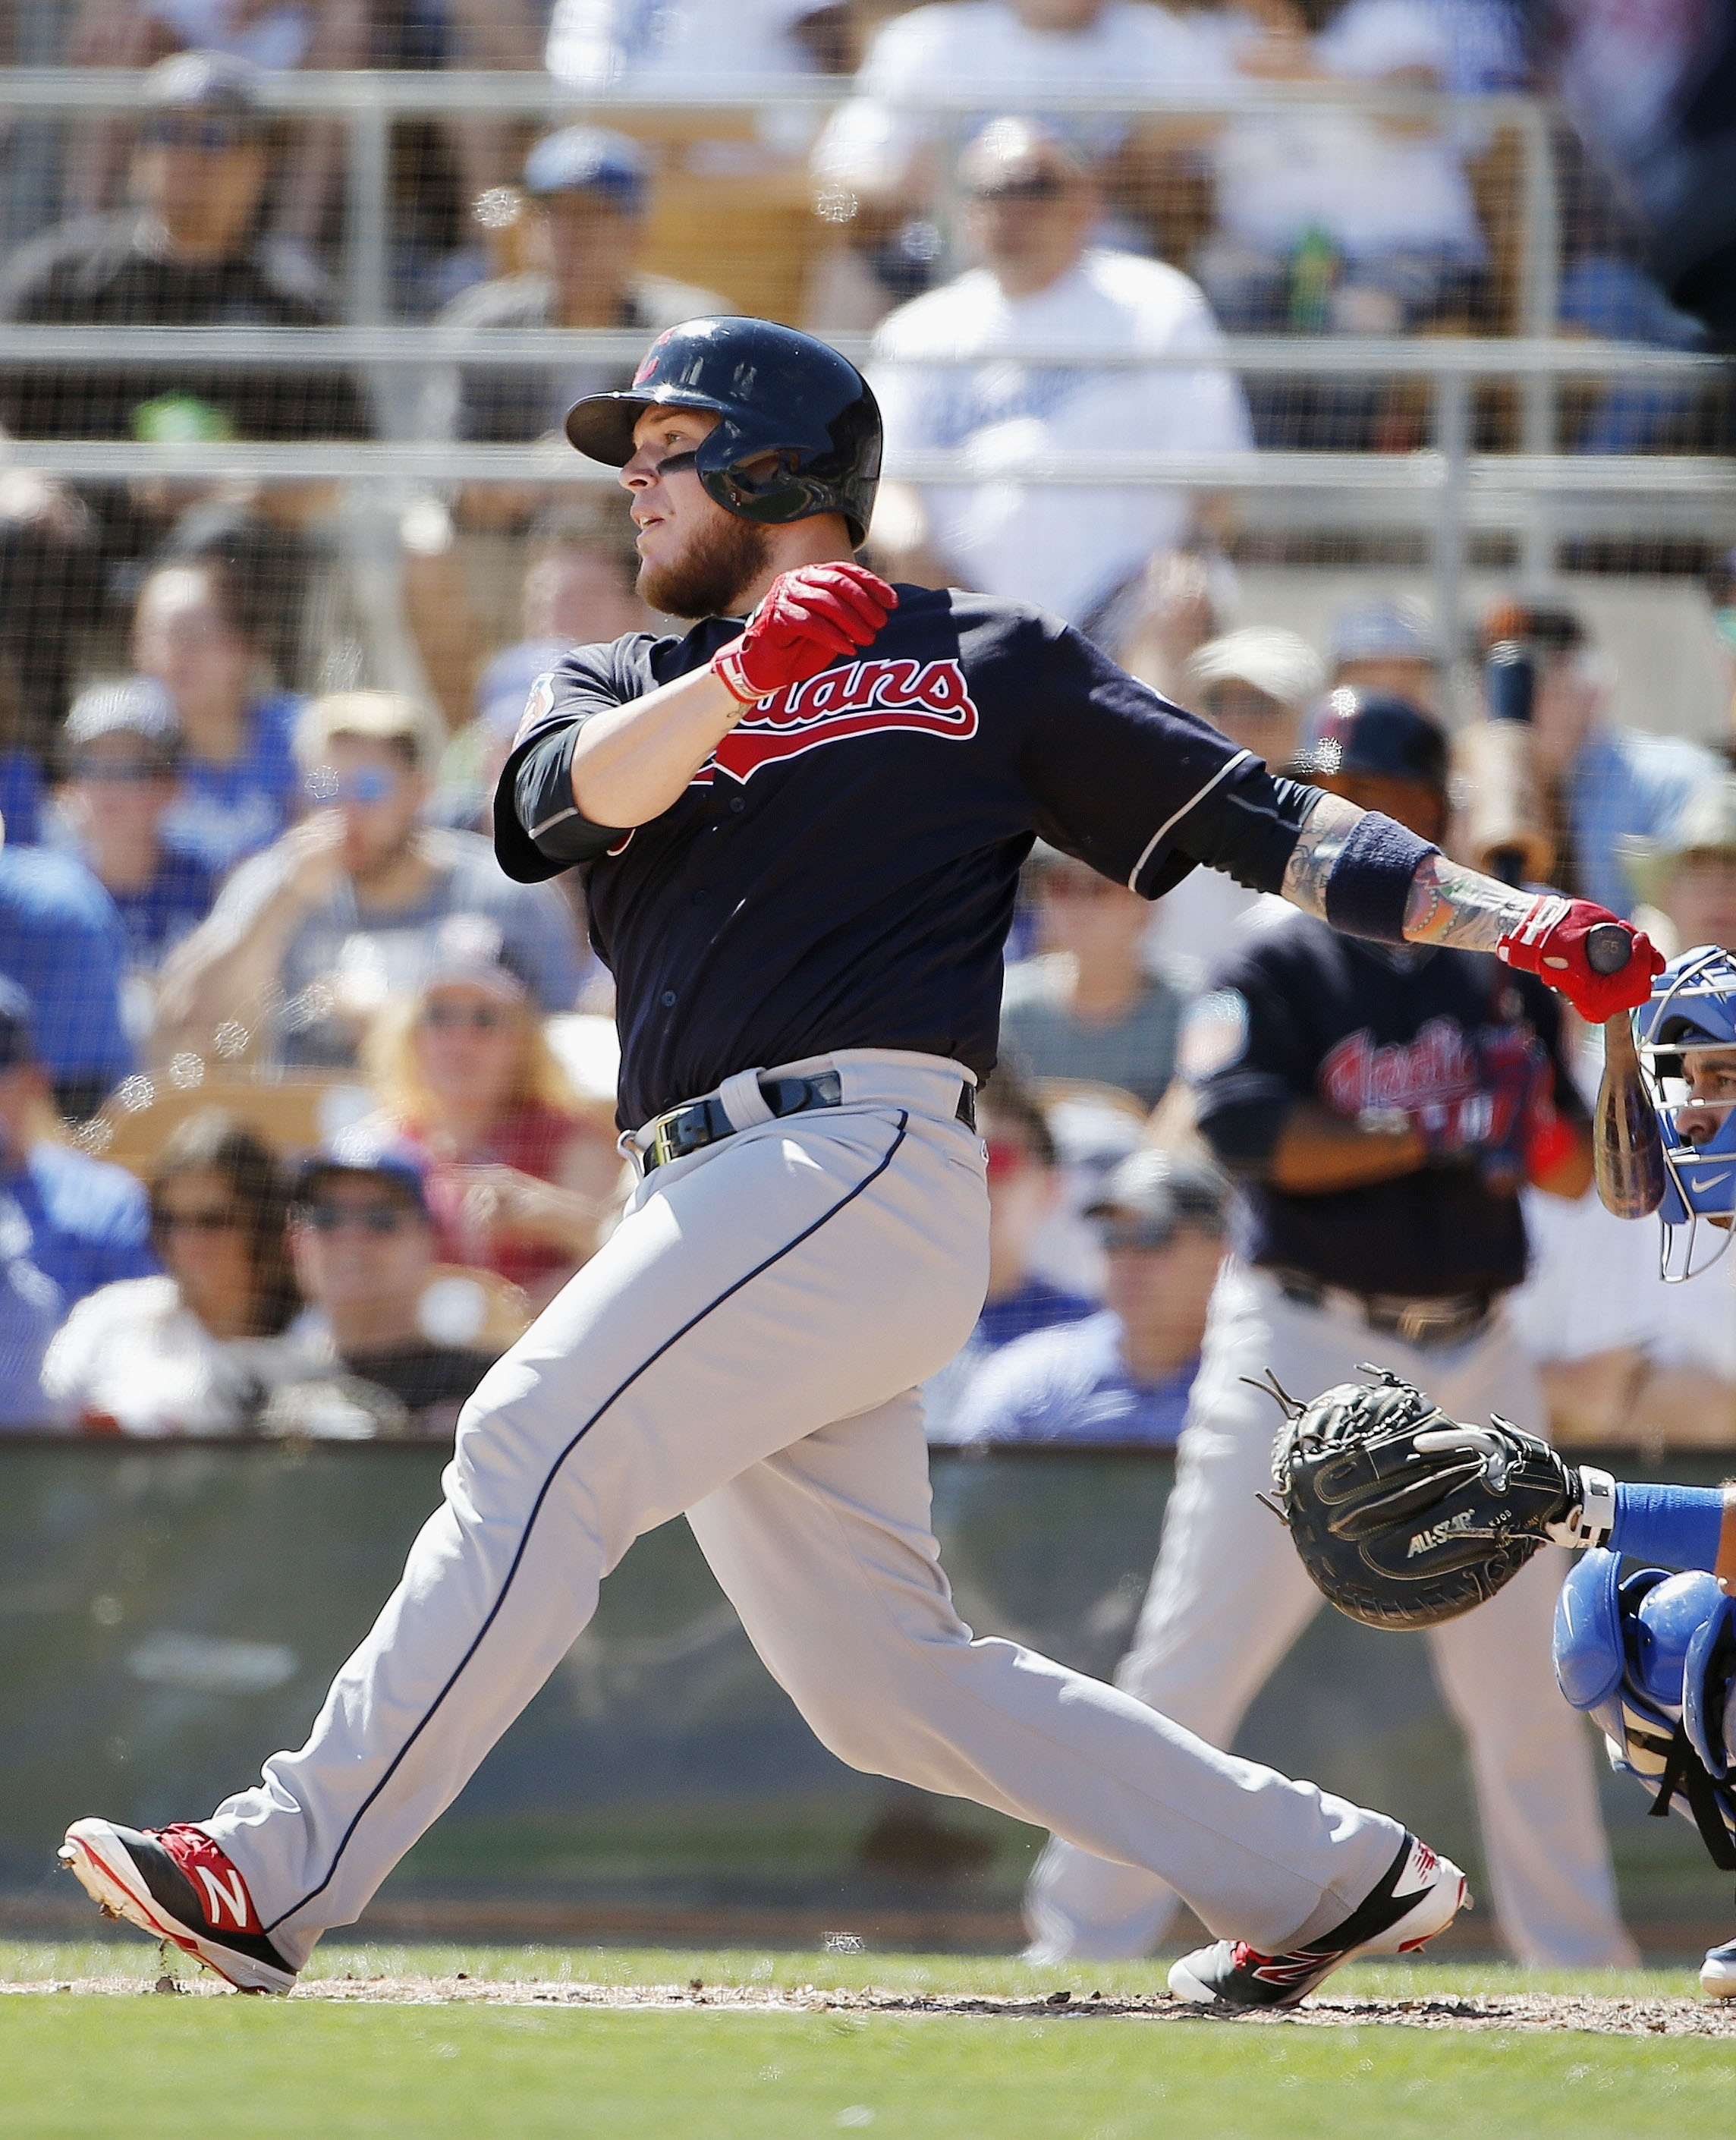 Cleveland Indians' Roberto Perez connects for a run-scoring double against the Los Angeles Dodgers during the fourth inning of a spring training baseball game Wednesday, March 30, 2016, in Glendale, Ariz. The Indians defeated the Dodgers 4-3. (AP Photo/Ro